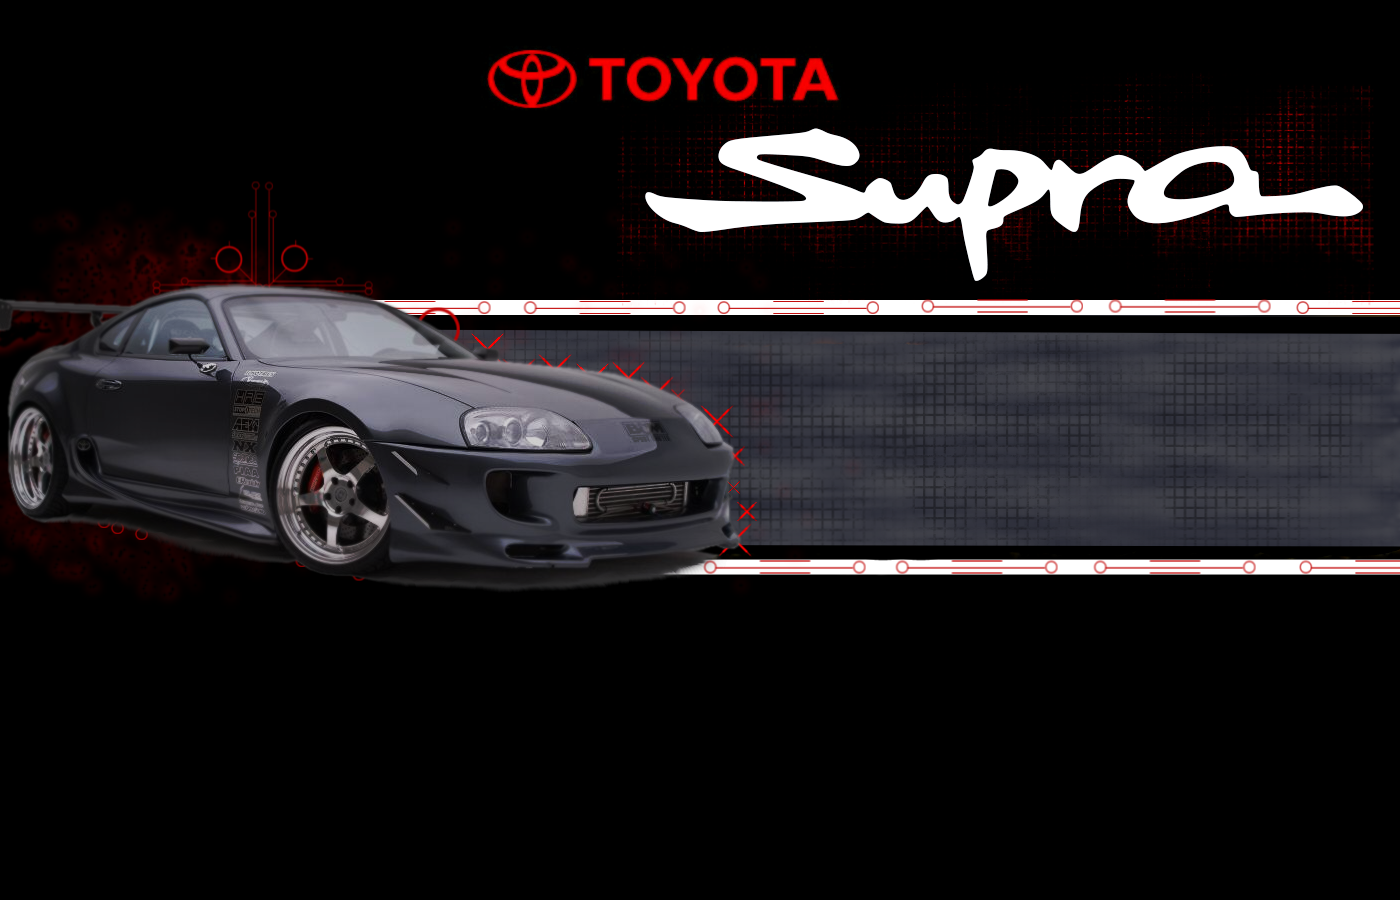 Toyota Supra Background For Desktop 588454 With Resolutions 1400900 1400x900